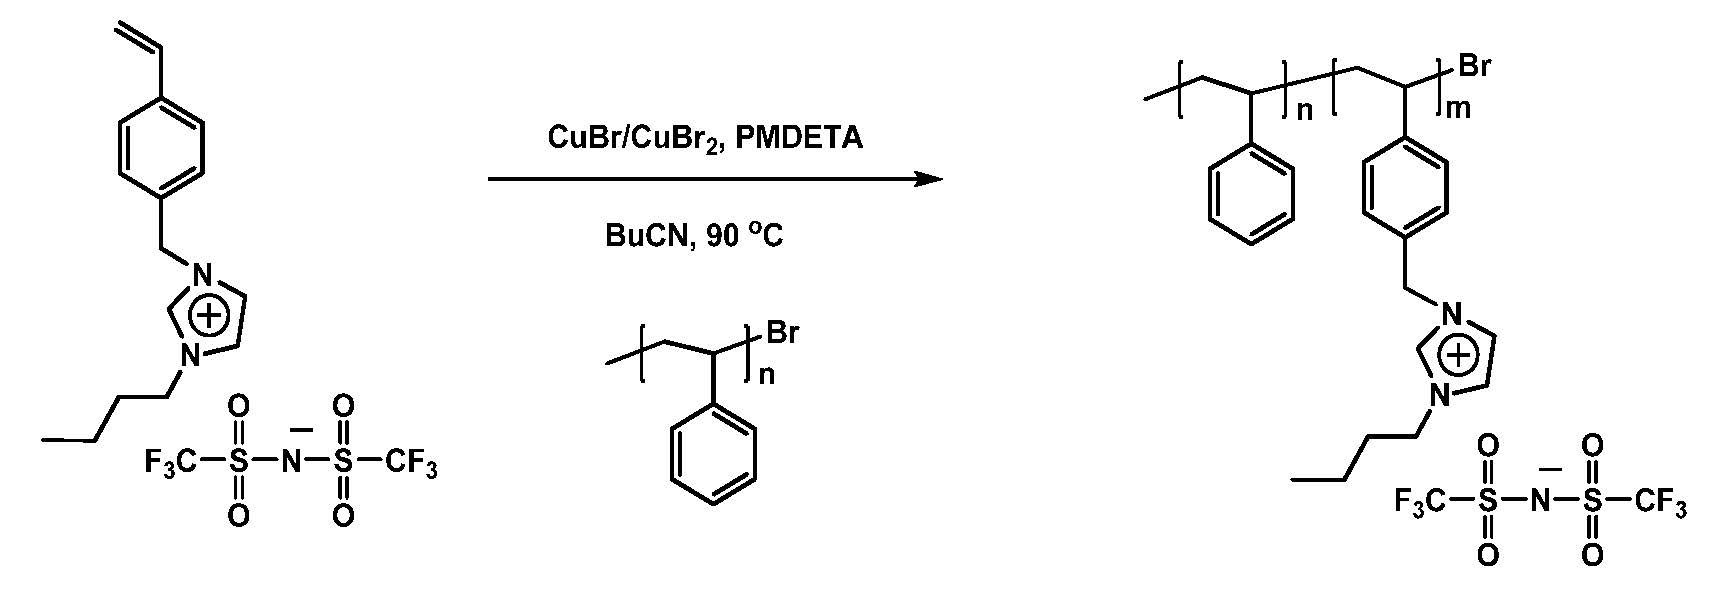 hight resolution of  monomer prior to polymerization allowed a controlled atrp to be conducted with a ratio of copper to initiator of 1 1 providing polymers with narrow mwd